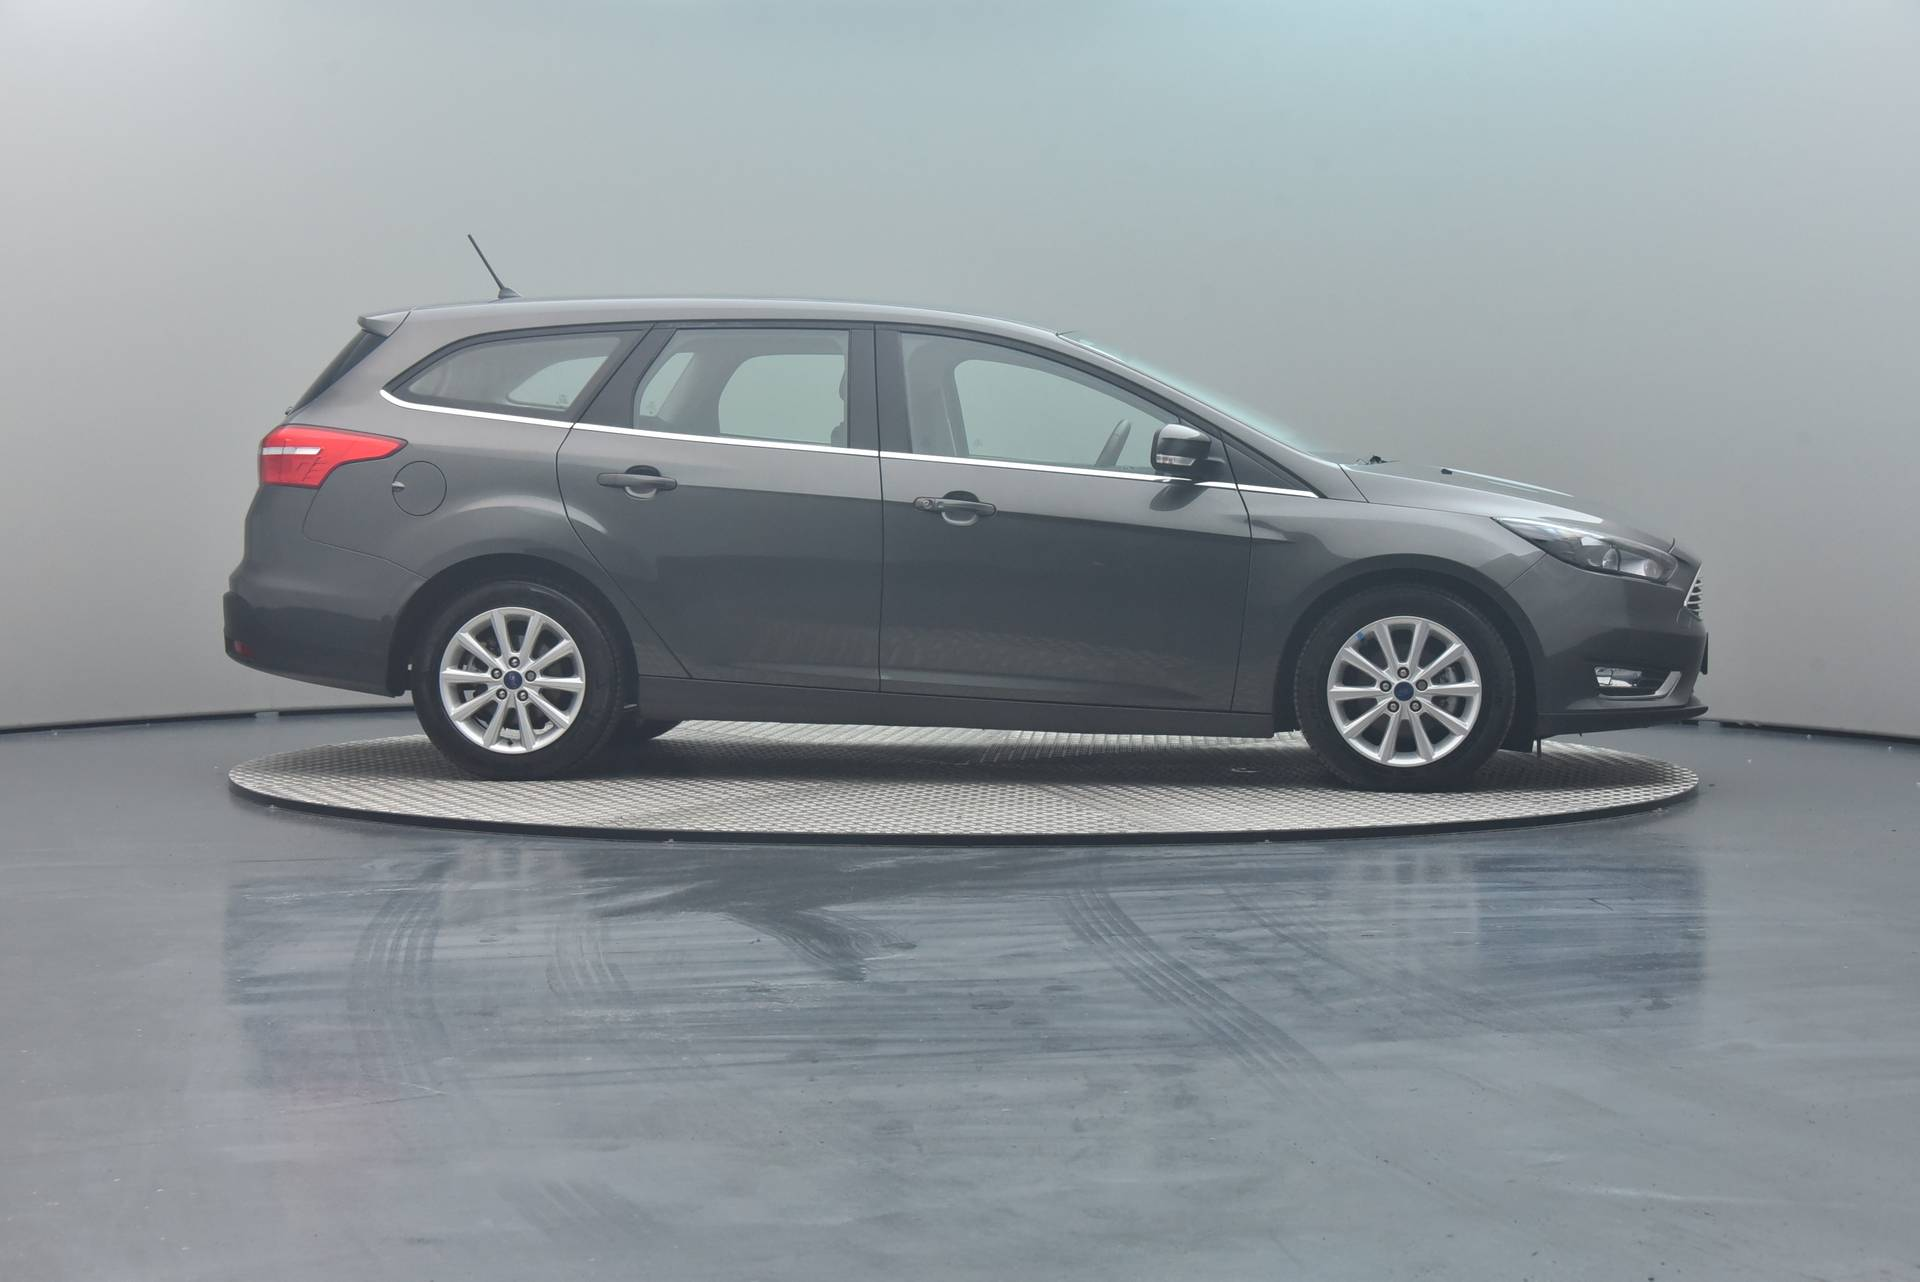 Ford Focus Turnier 1.5 TDCi DPF Start-Stopp-System, Business, 360-image29